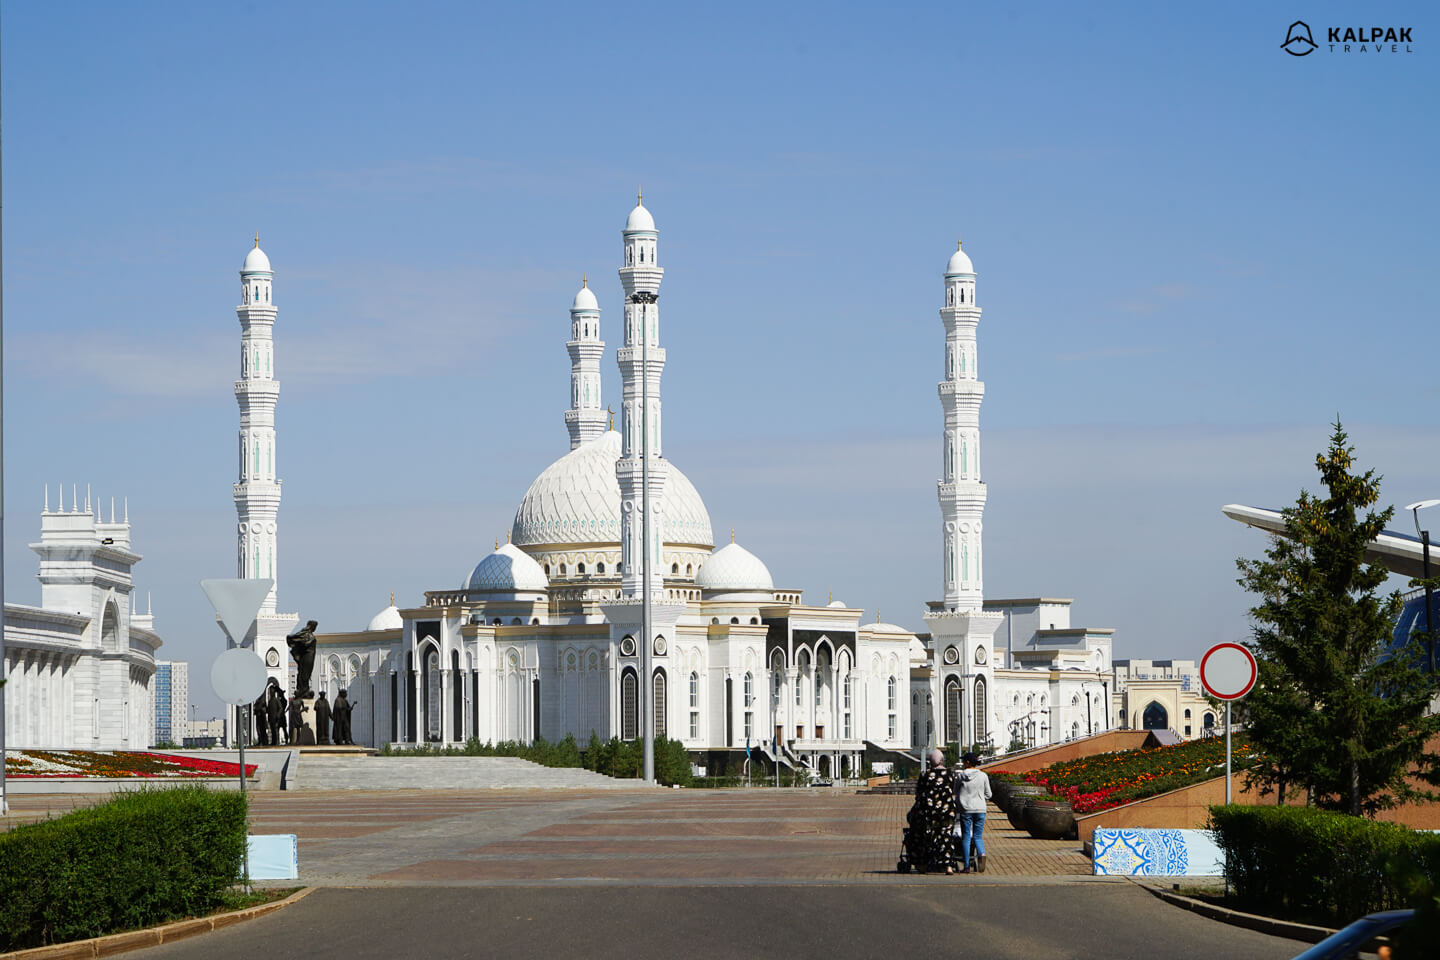 Khazret Sultan mosque in Nur-Sultan